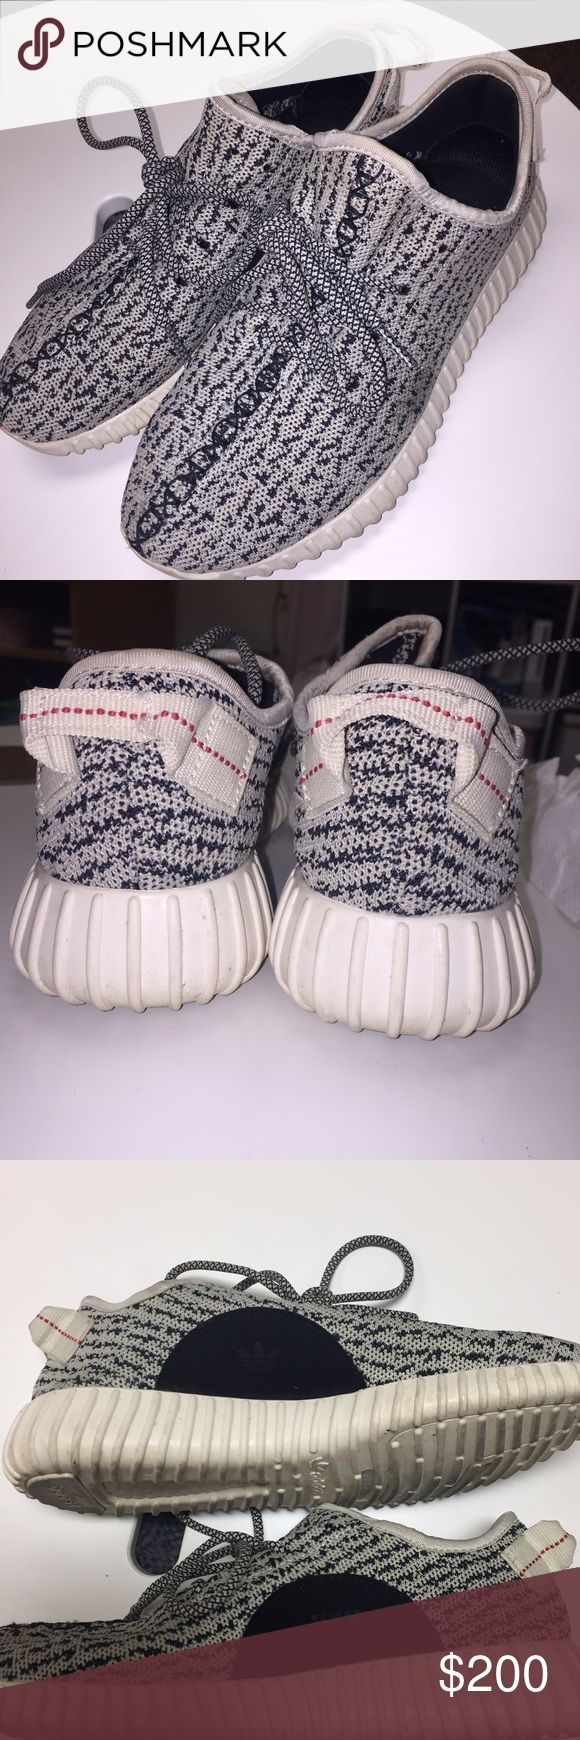 Yeezy Boost 350 •i have no clue if these are authentic or not, bought online didn't come with box.                   •i have checked multiple websites and everything these shoes have match up with the real ones.                                 •only sign of wear is on bottom for obvious reasons  •FOR SERIOUS INTERESTED BUYERS: comment your email and i will send more pics/ links to real vs fake yeezy websites. Yeezy Shoes Sneakers